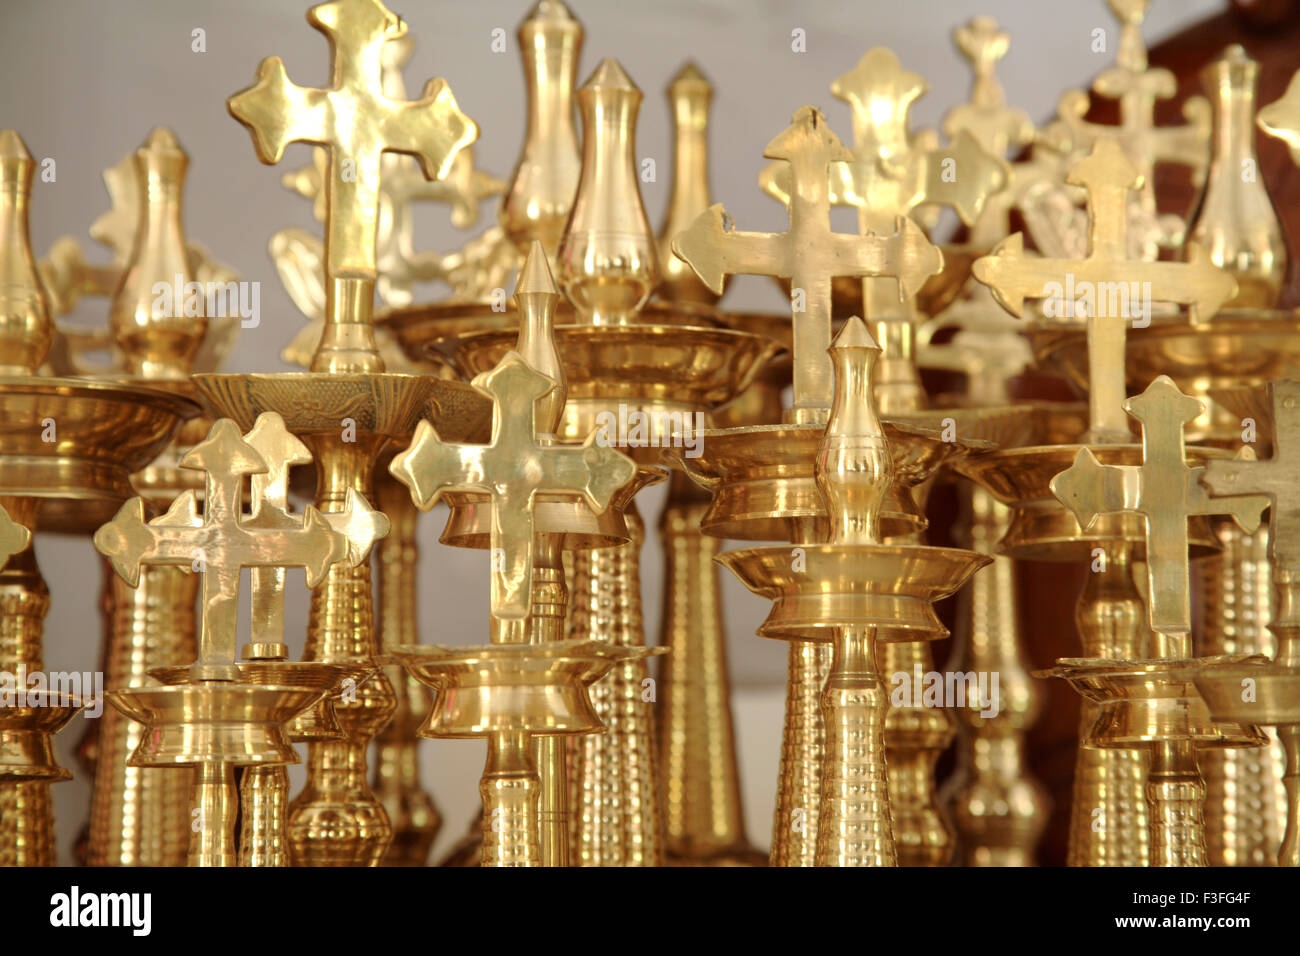 Image result for Hindu lamp with a cross photo image